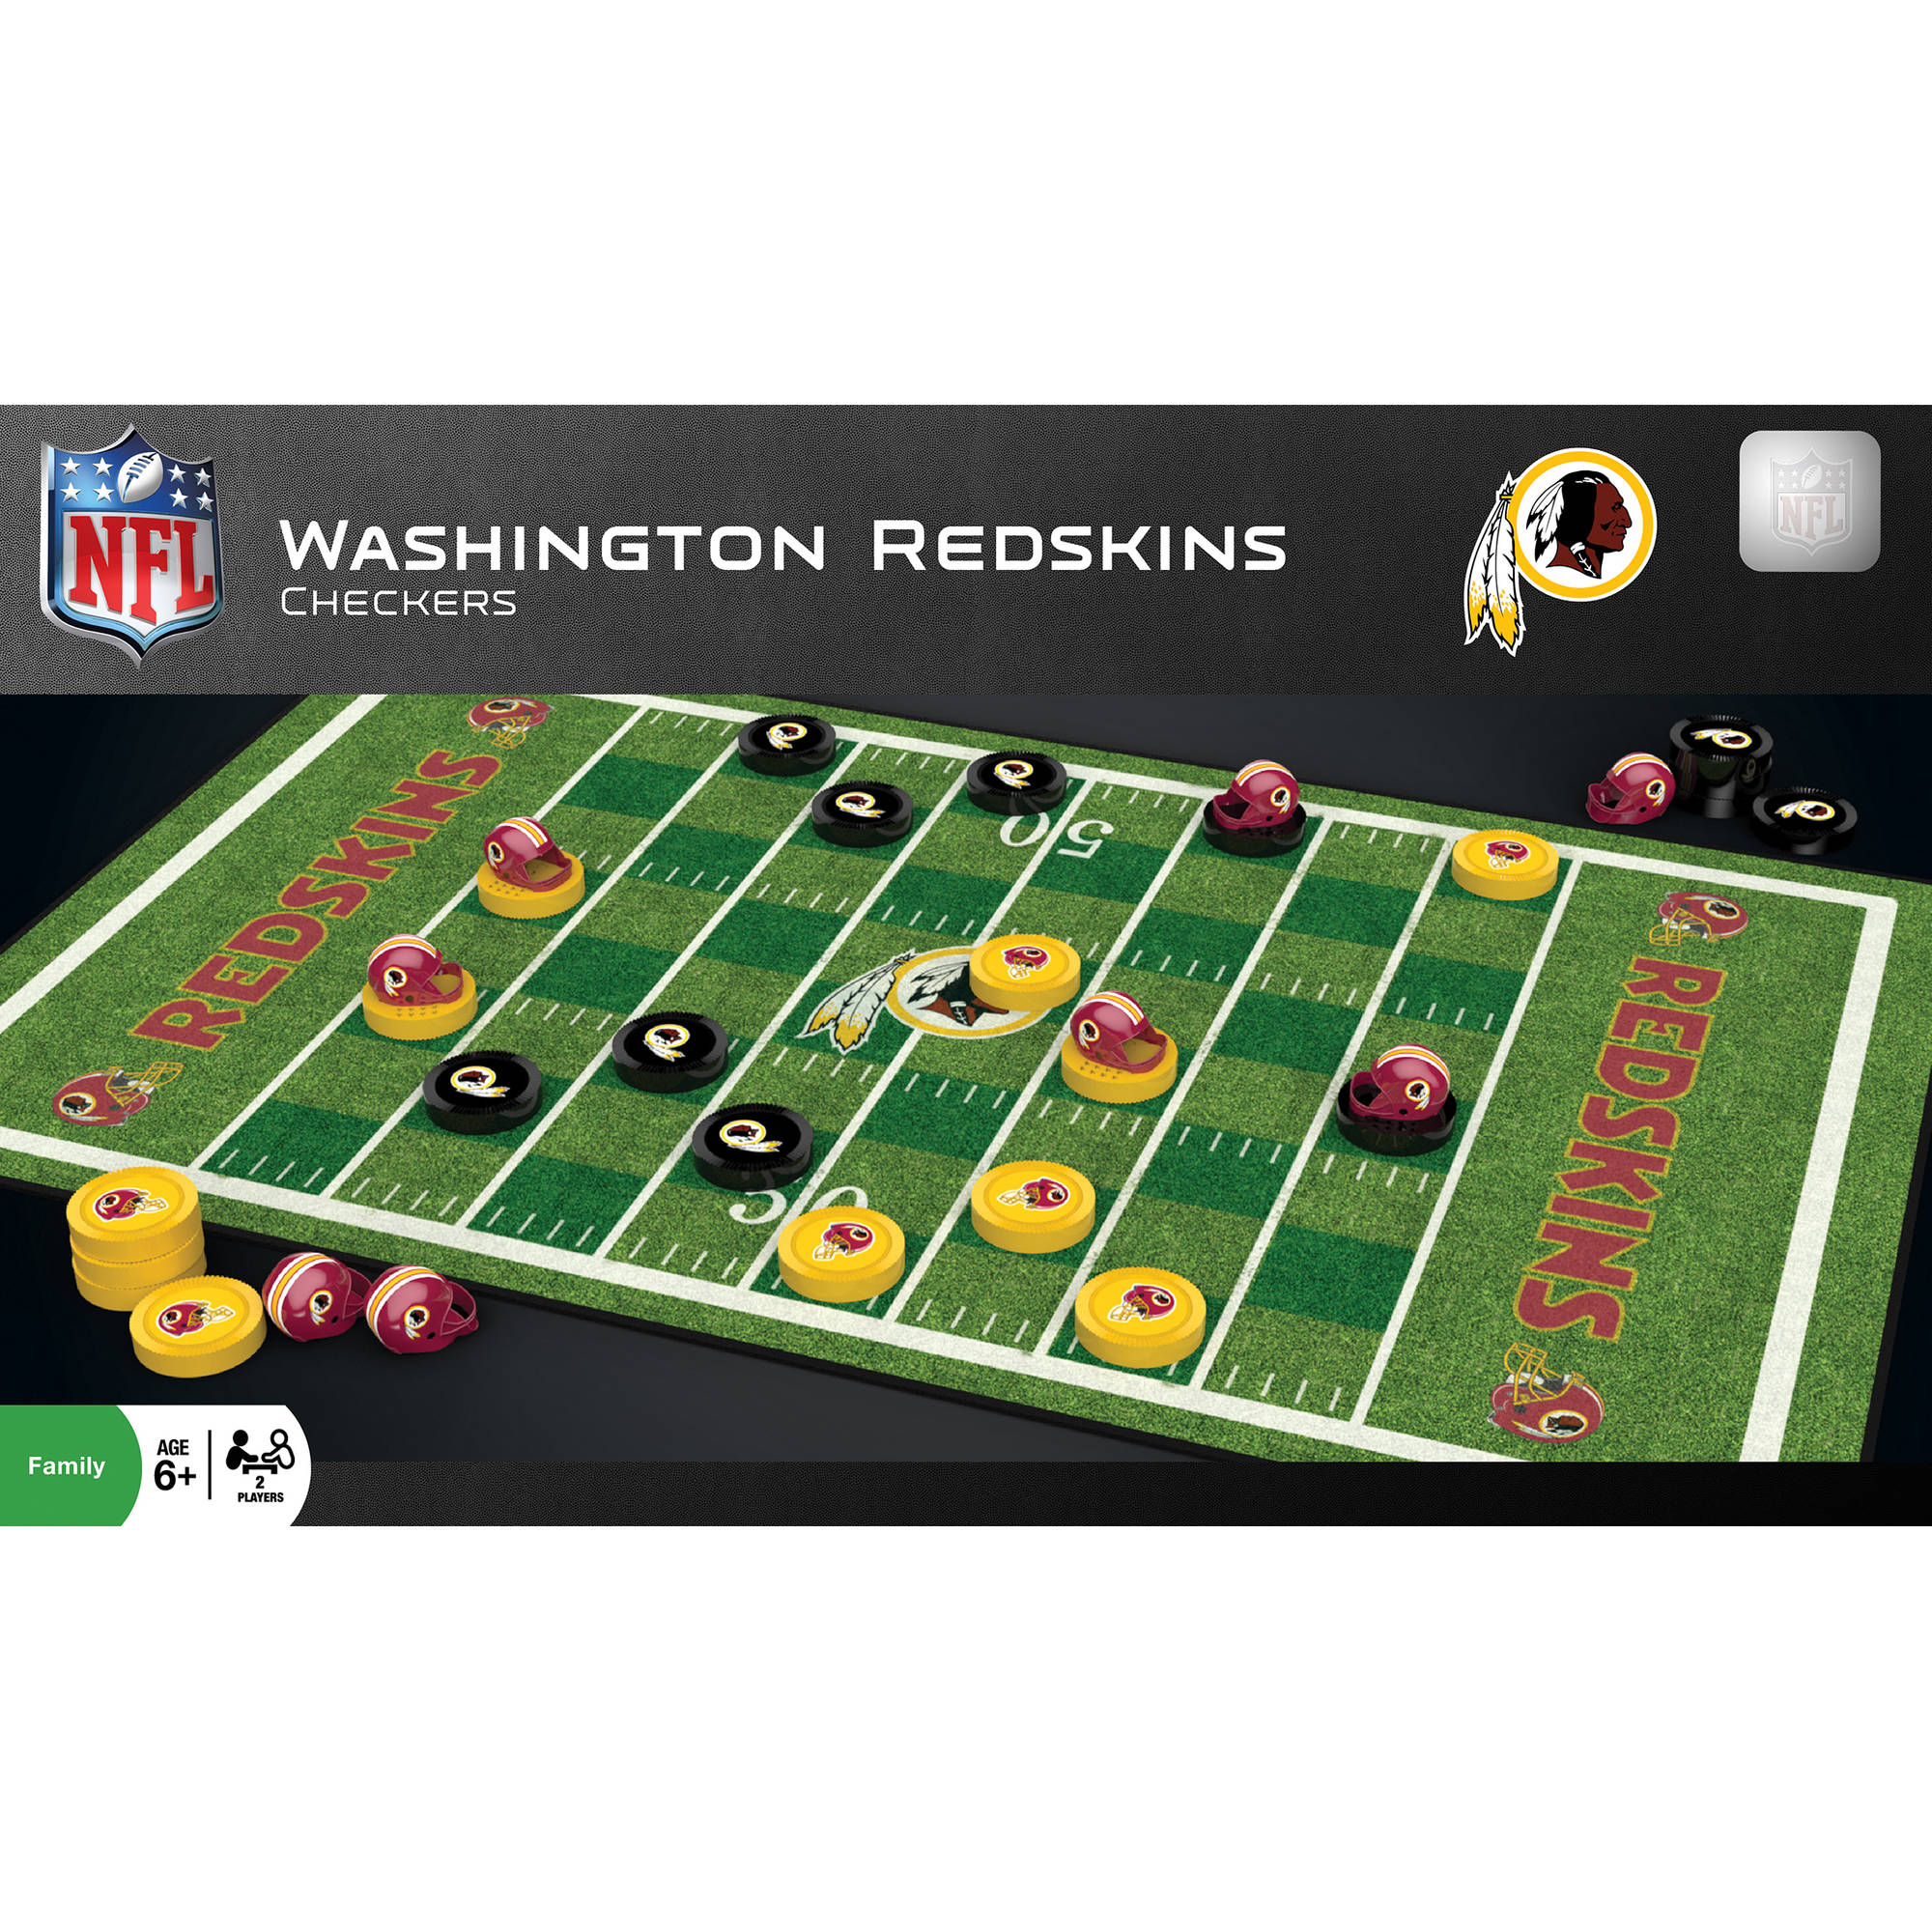 MasterPieces NFL Washington Redskins Checkers Game by Generic